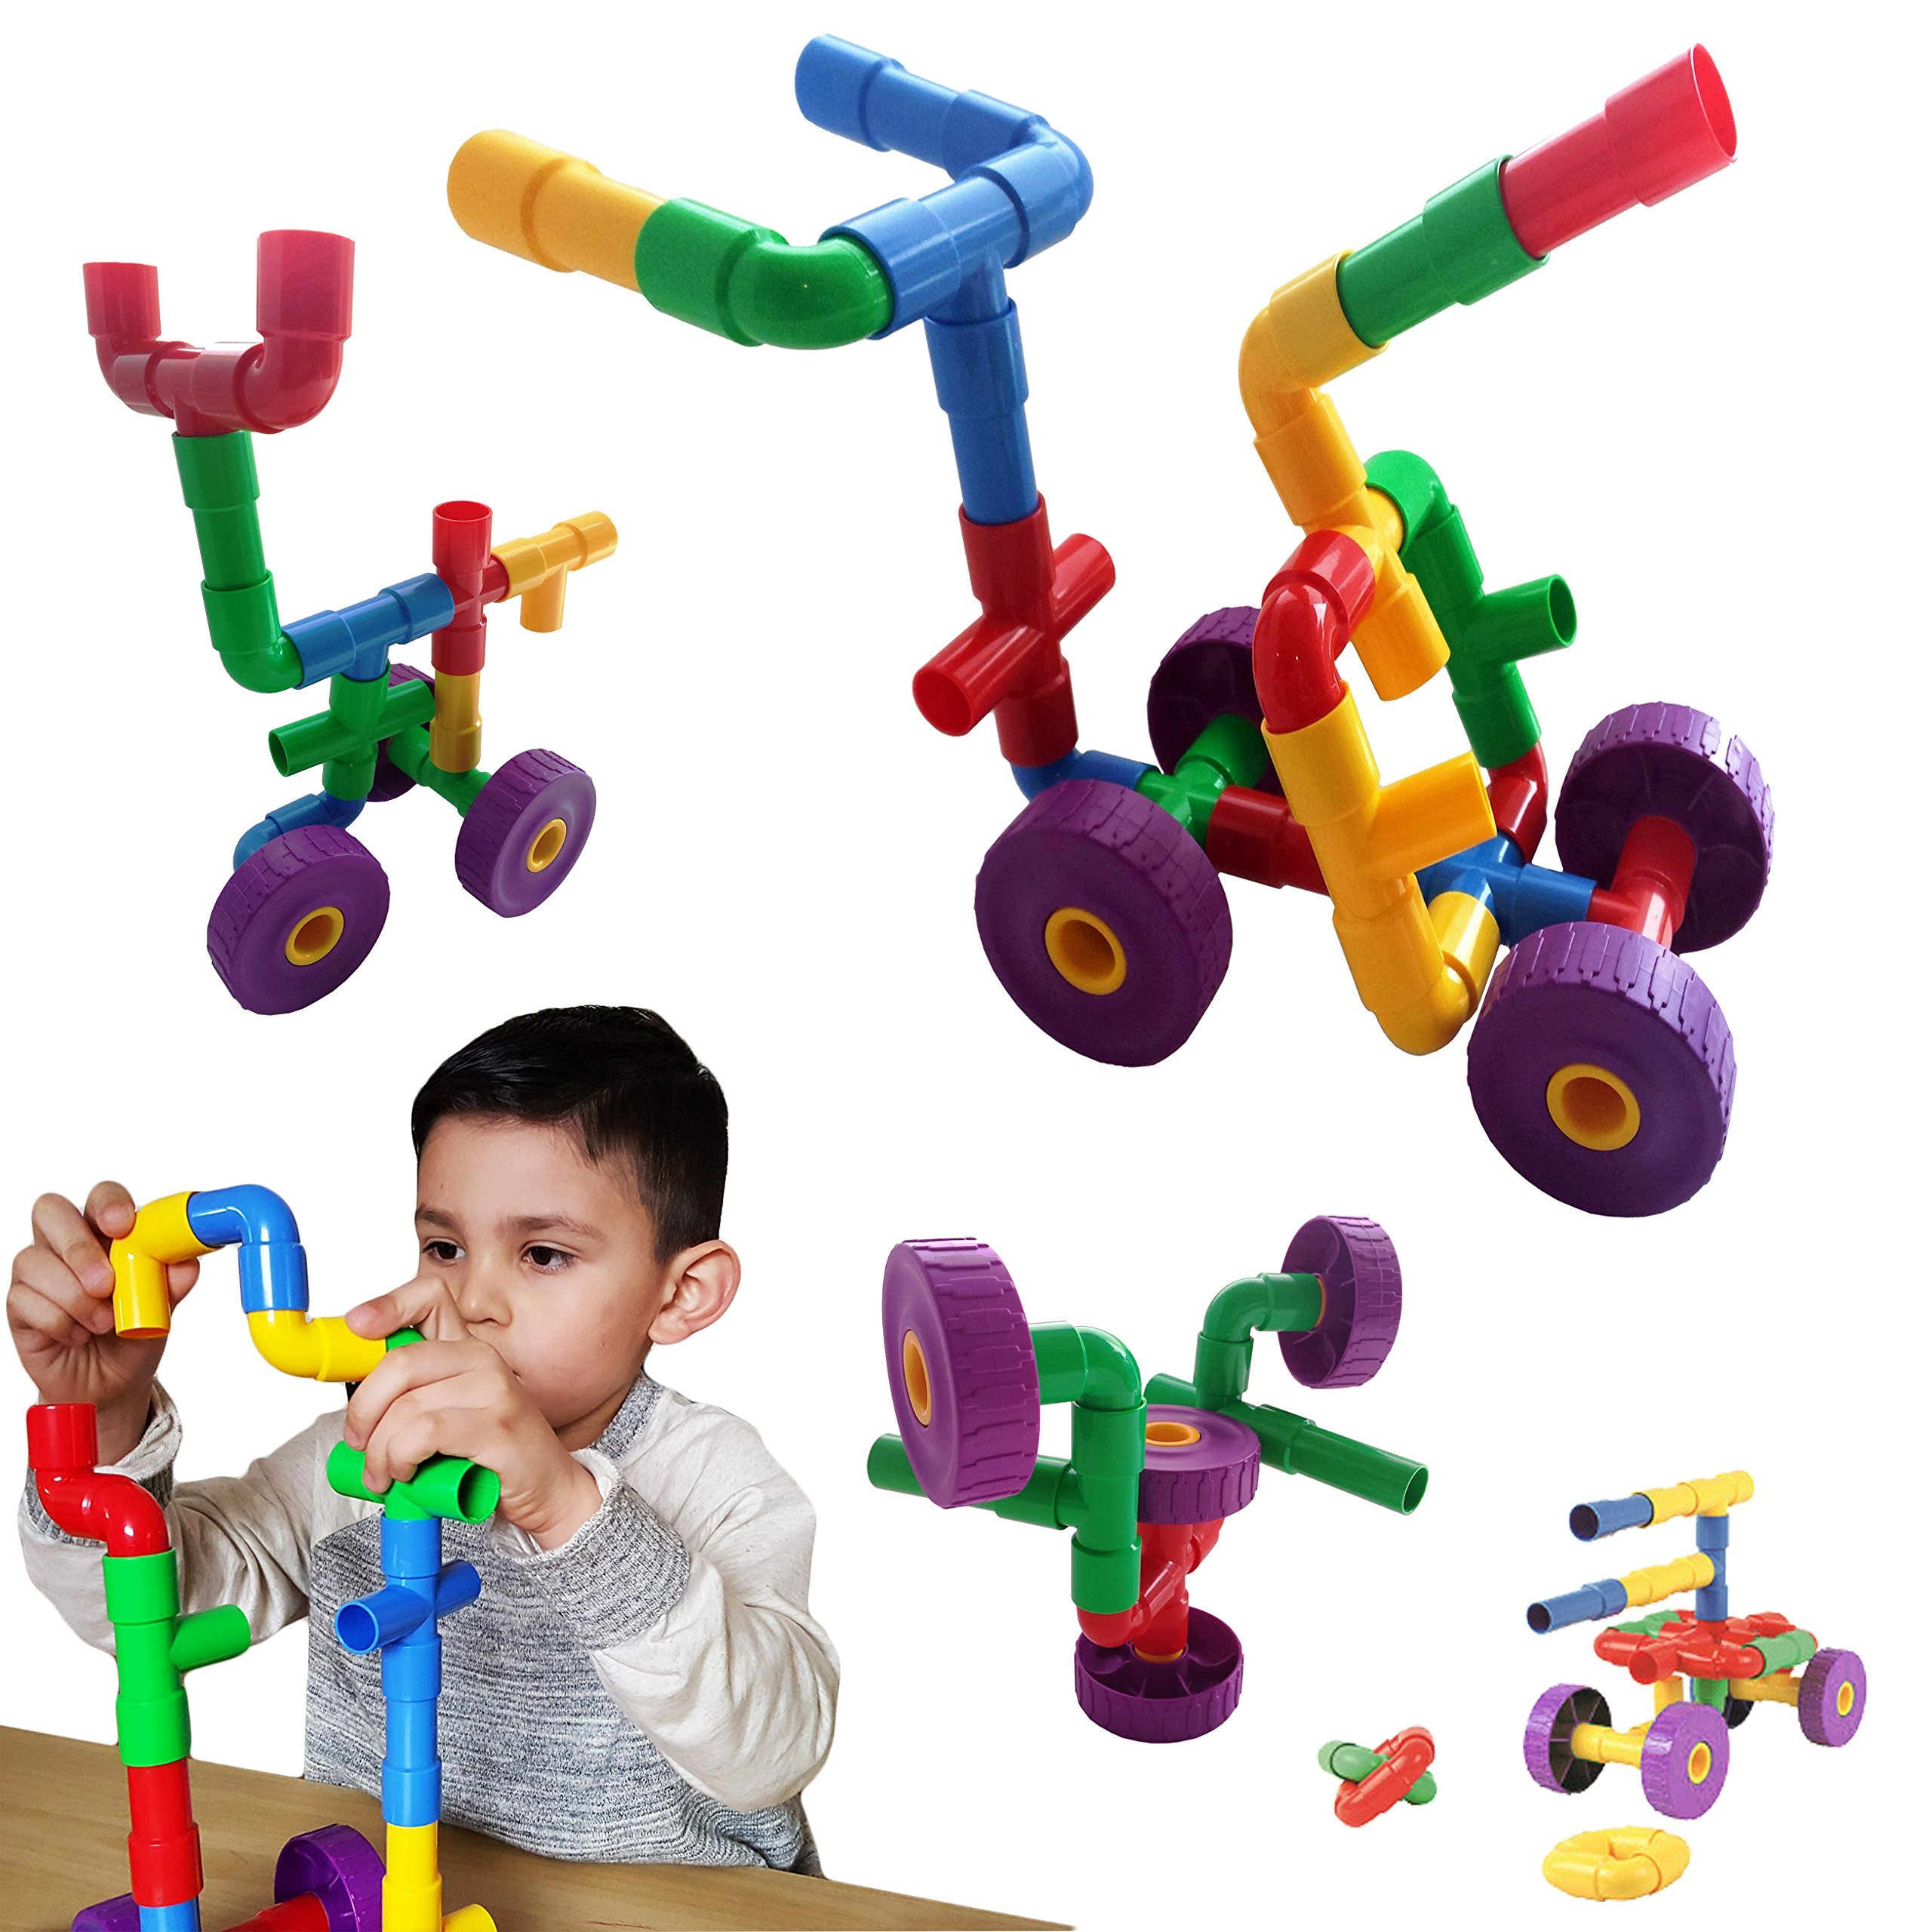 Skoolzy STEM Toys for Boys and Girls - Pipes & Joints Building Blocks Construction Sets for Kids - Fun Toddlers Fine Motor Skills Engineering   Best Gift Educational Toy for Age 3 4 5 Year Olds